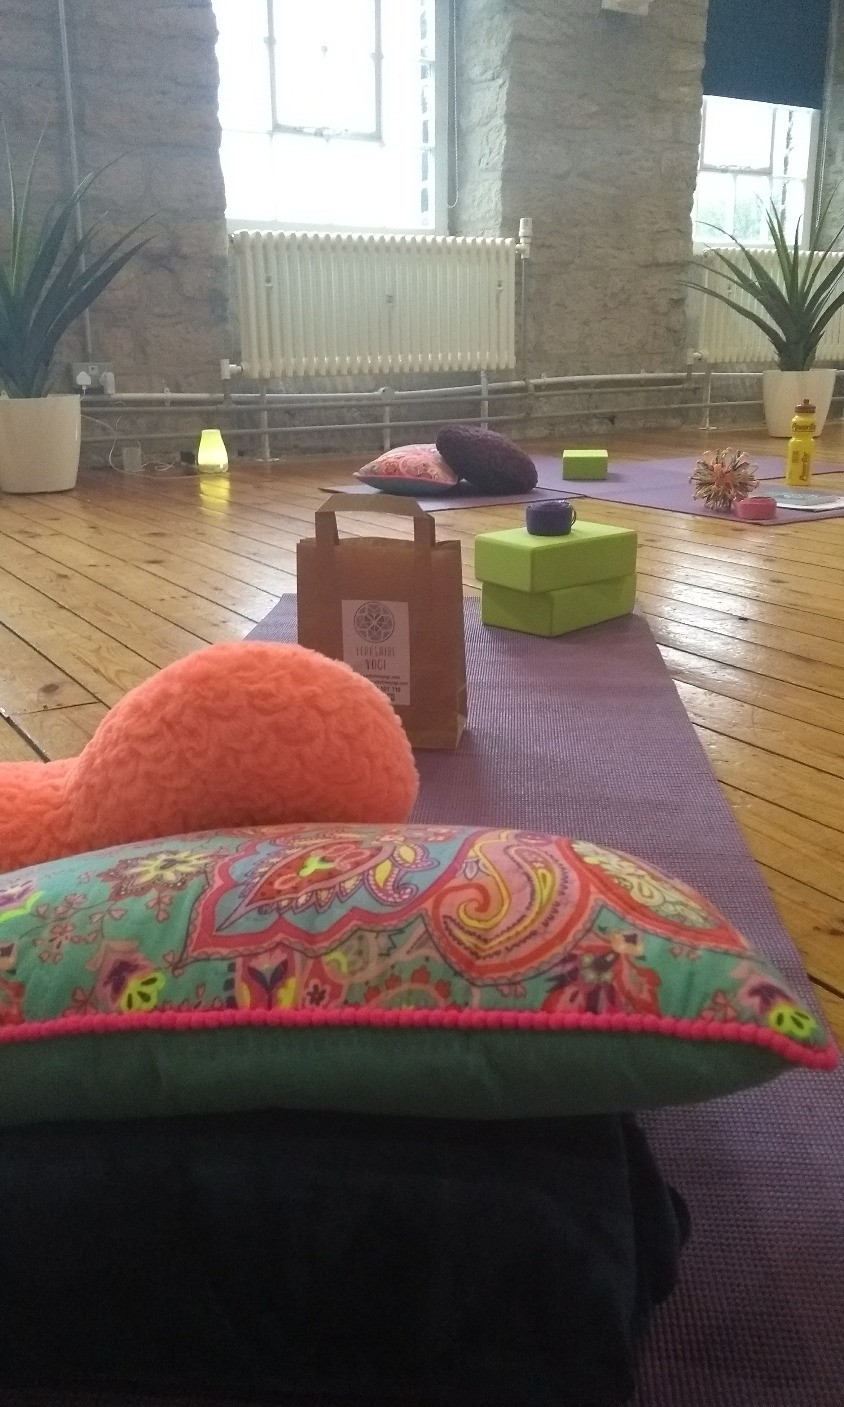 Yorkshire Yogi Retreat Marsden, Mind It Ltd, Wellbeing workshops, wellbeing webinars, wellbeing training, wellbeing consultancy, Leeds, England